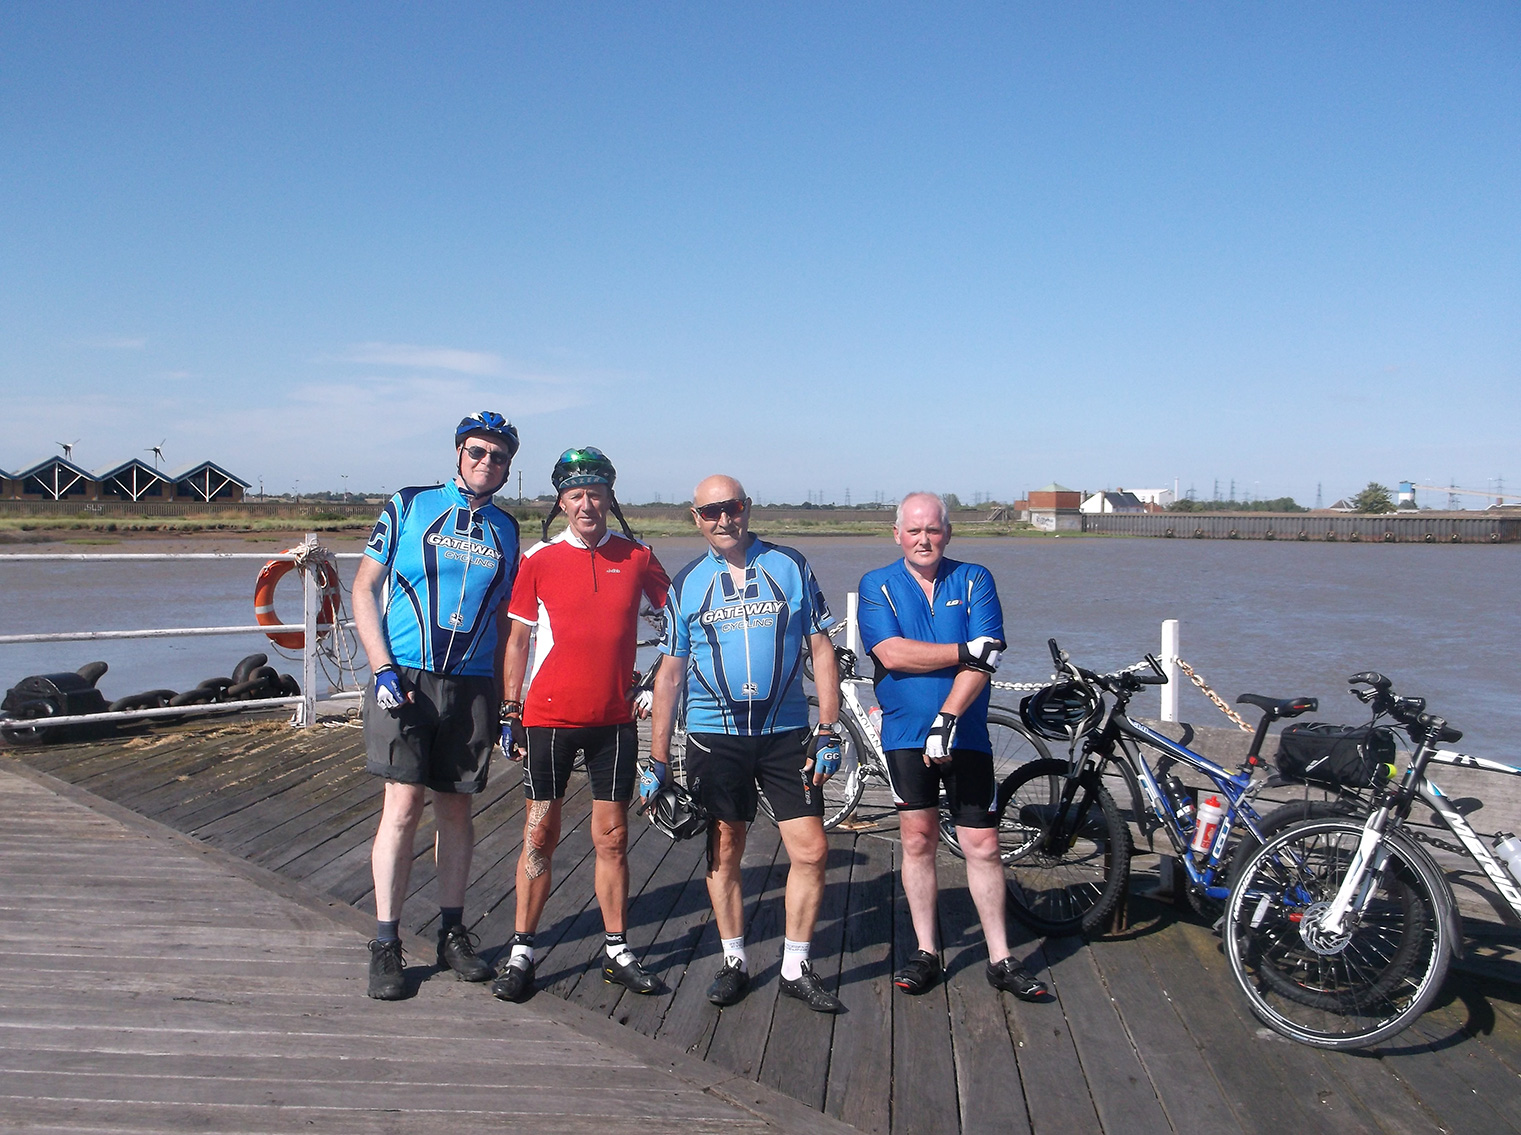 Recreational Ride to Kent – Ride Report